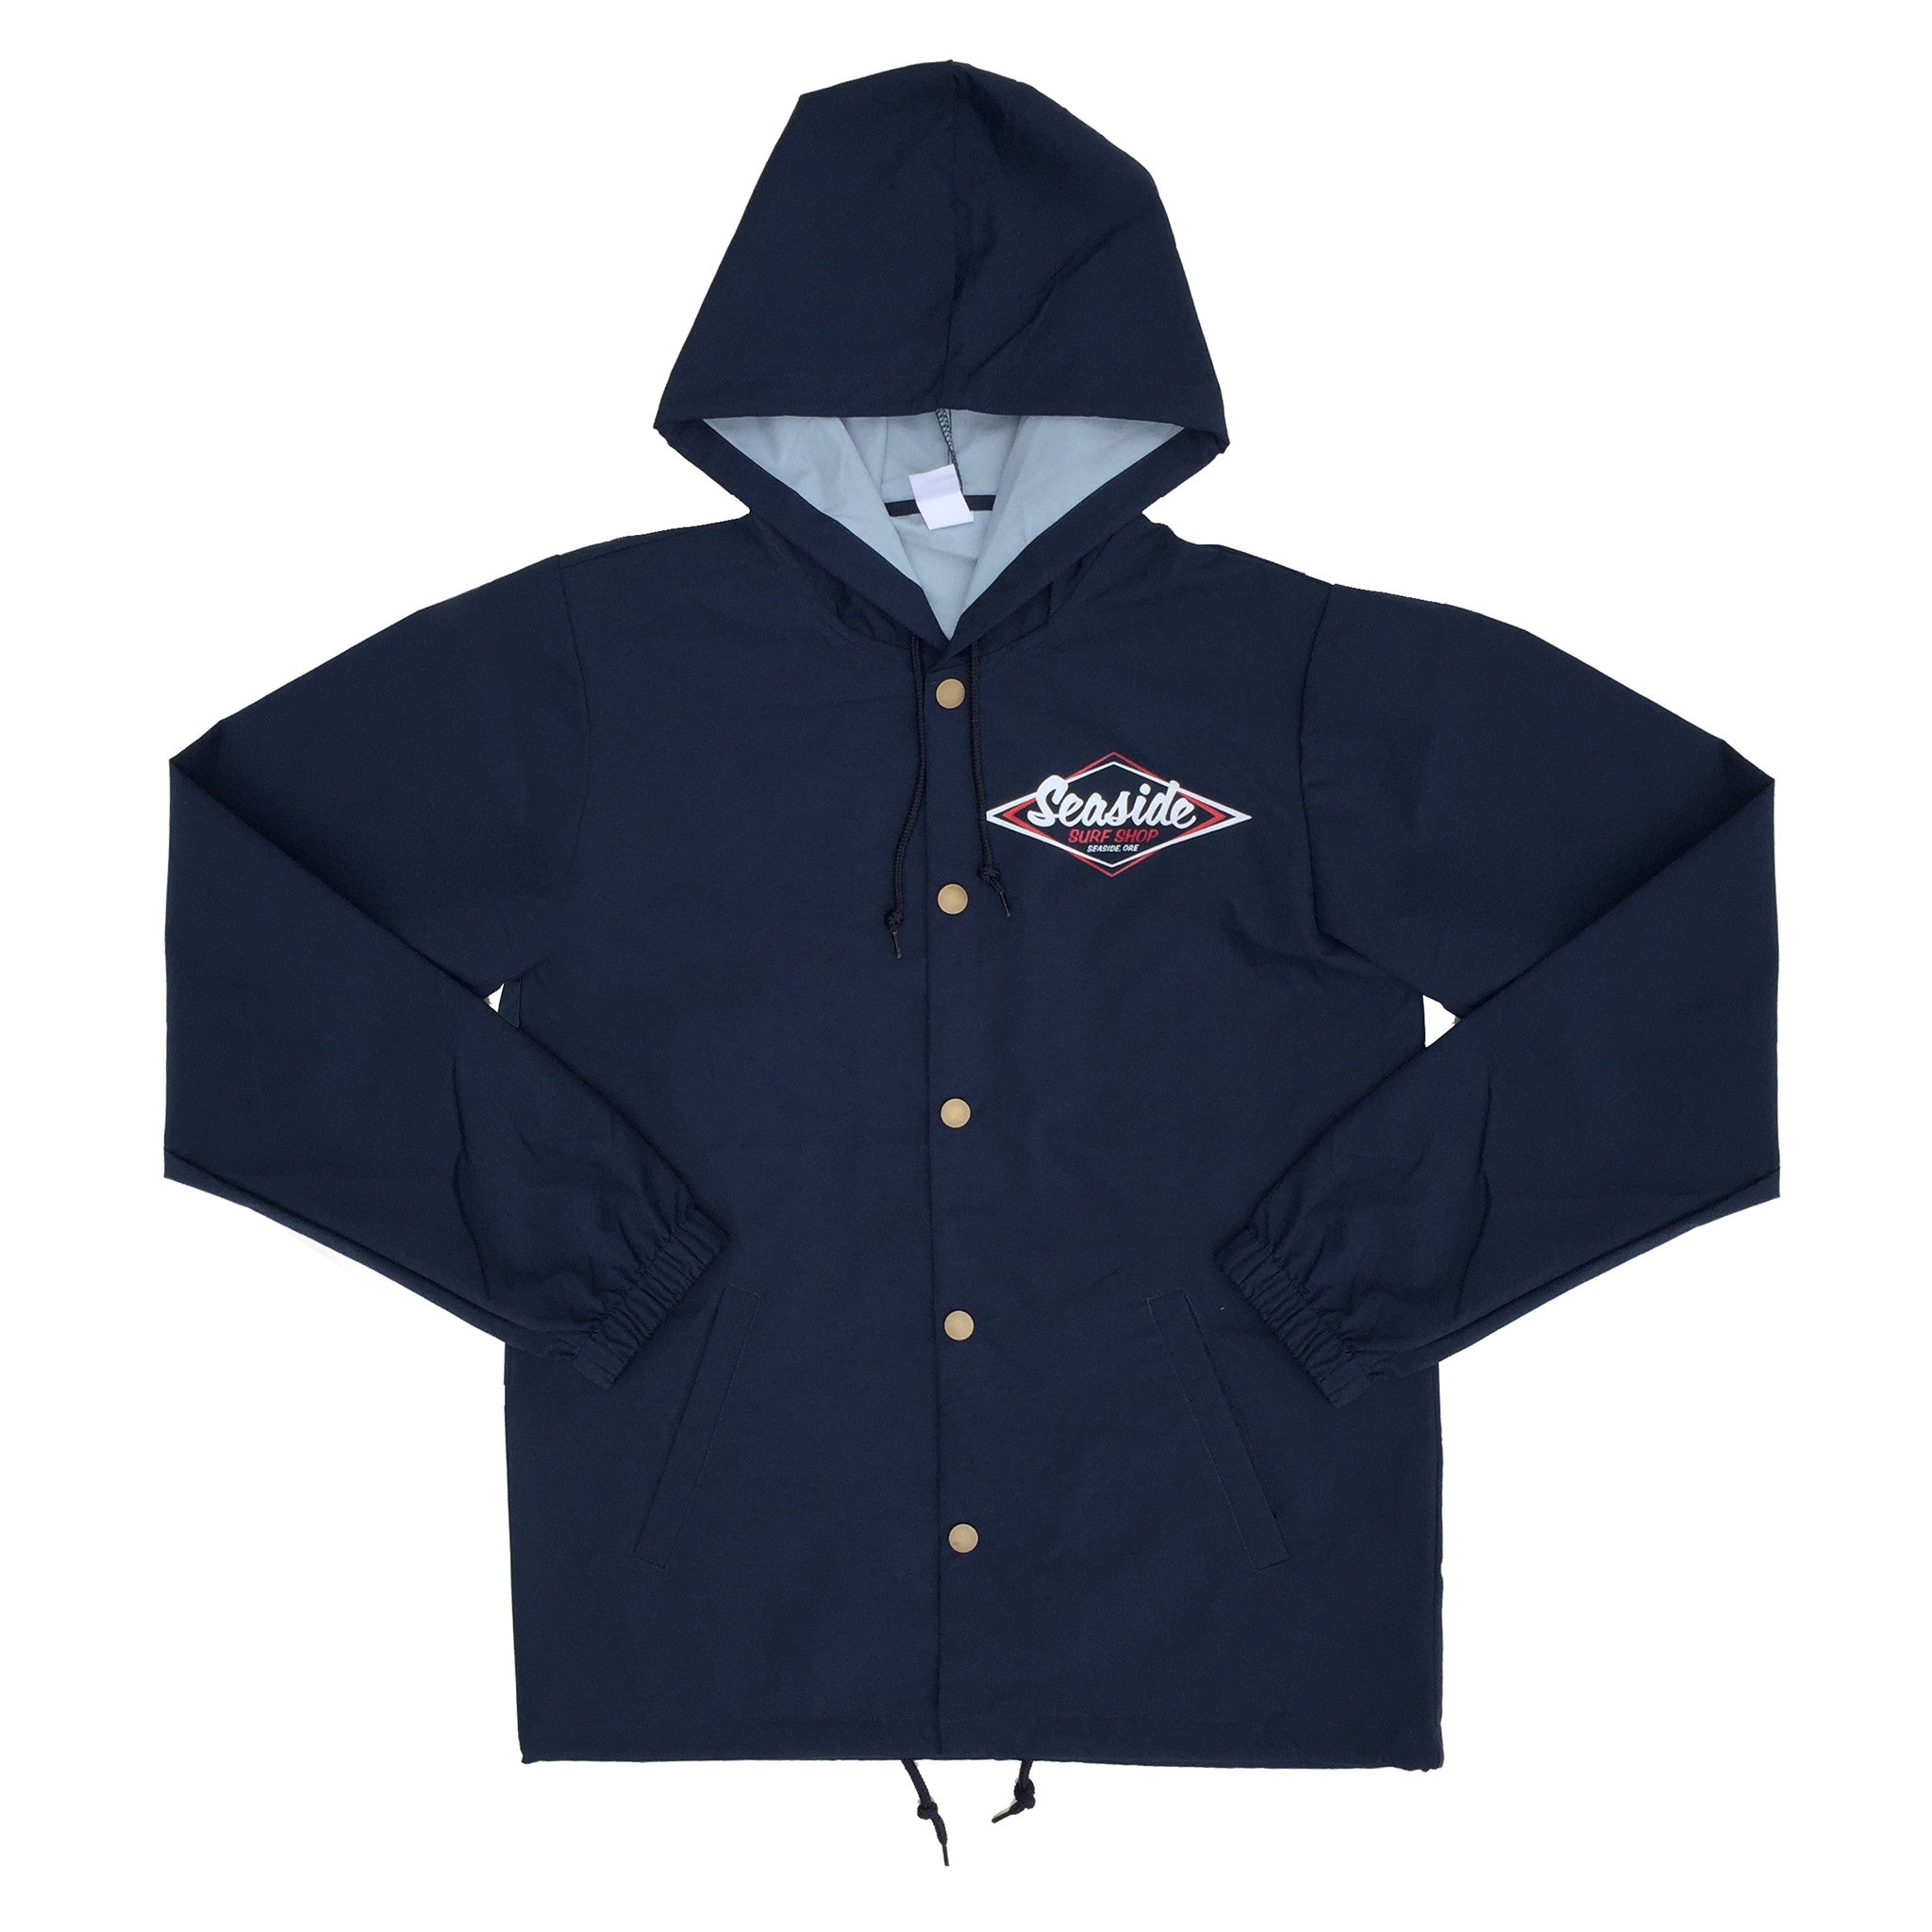 092cc70d933f Seaside Surf Shop Mens Vintage Logo Coaches Jacket - Navy-Seaside Surf  Shop-Seaside